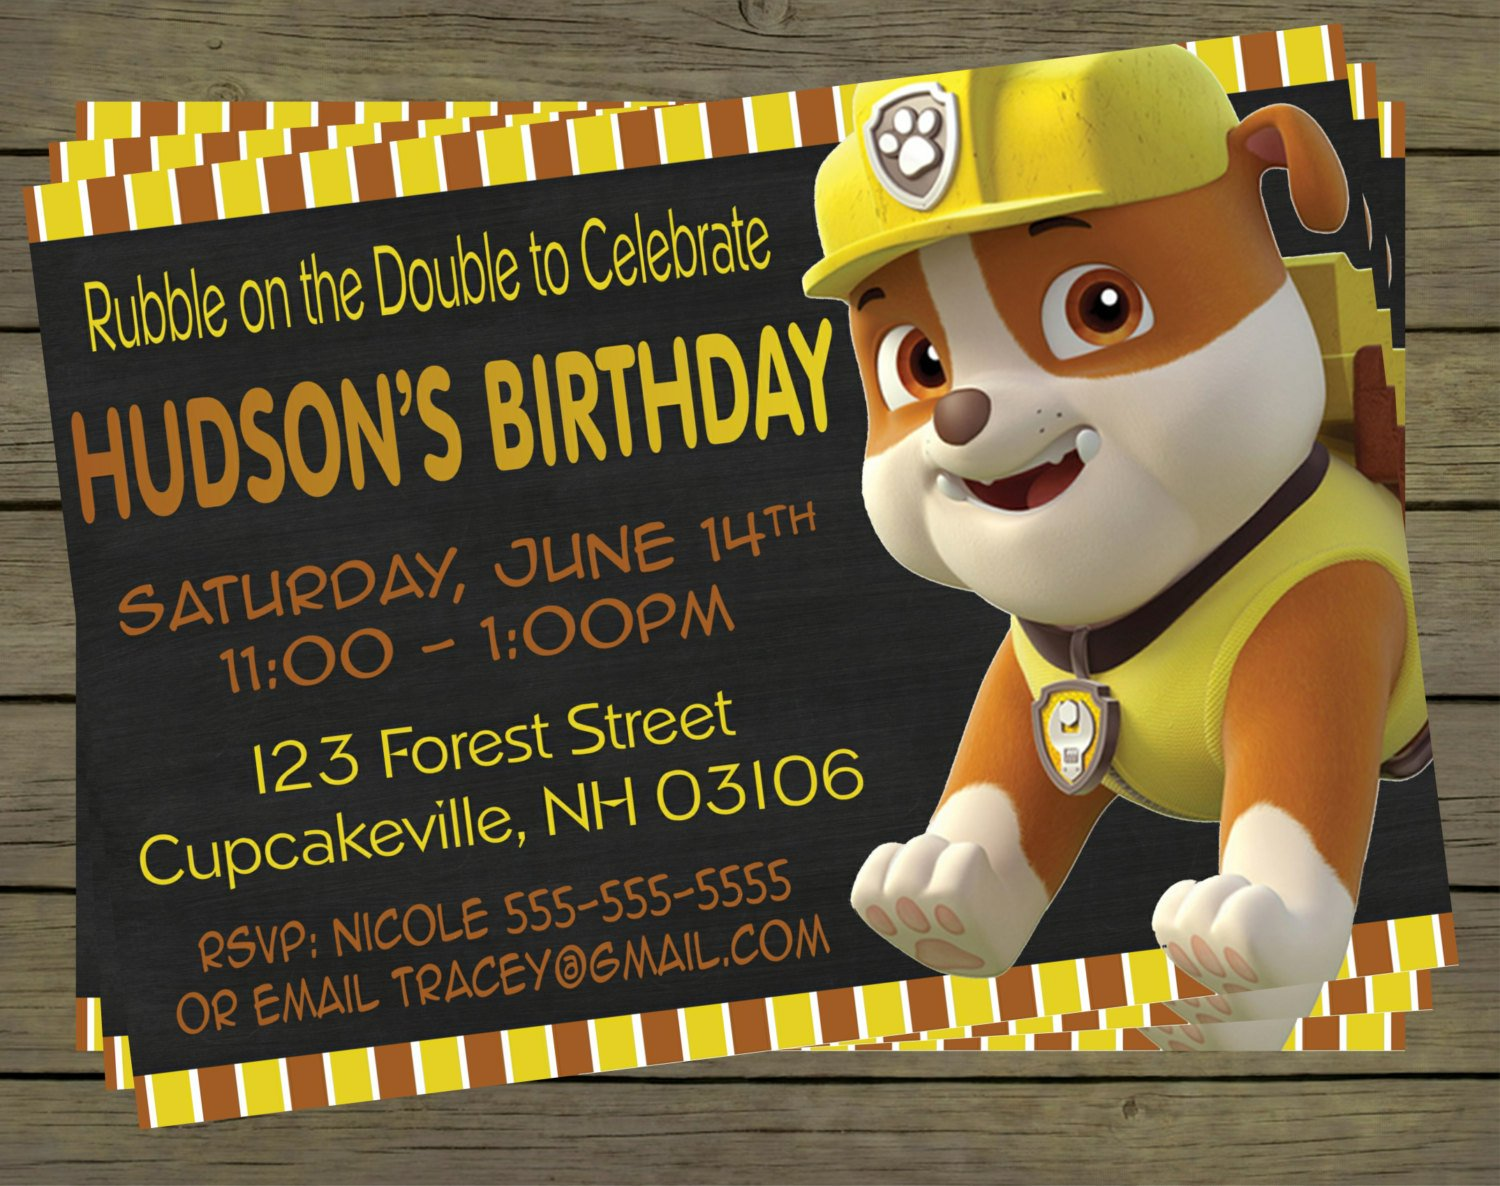 Paw Patrol Rubble Birthday Party Invitation